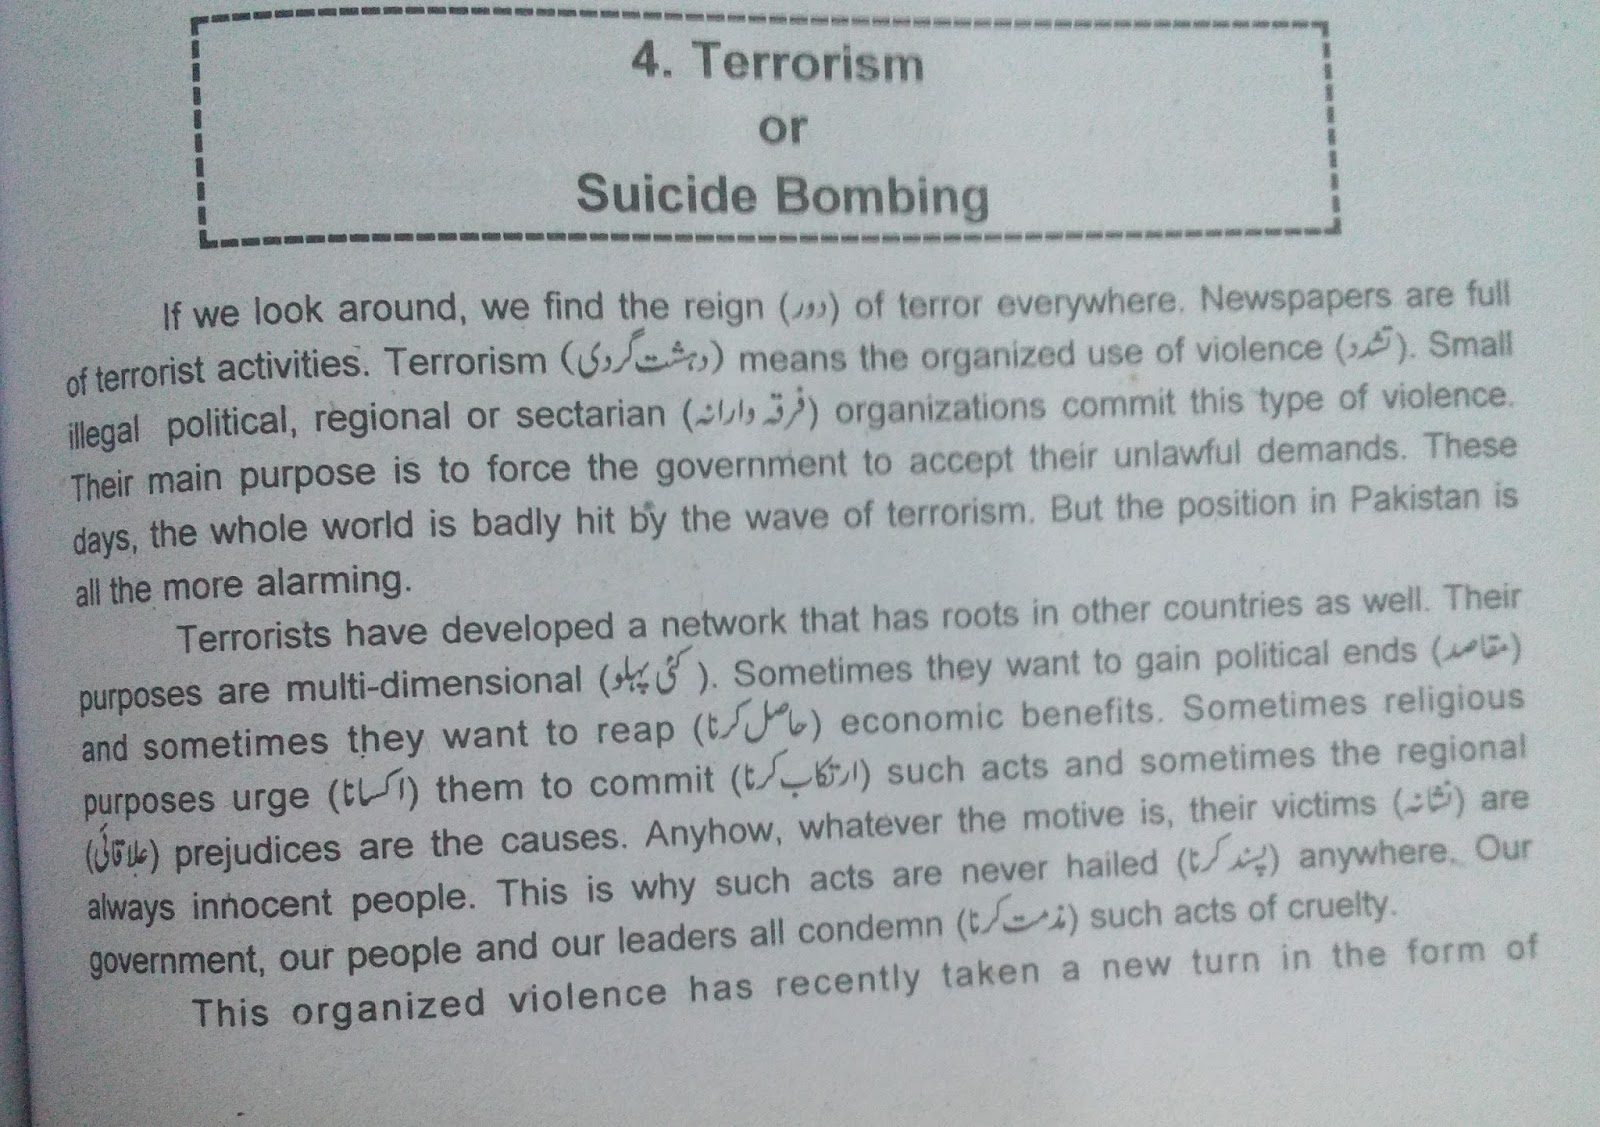 can terrorism be justified 2 essay View notes - short essay 1 - andrew valls criteria and justified terrorism from pax 201 at oregon state university pax 201 prof orosco 5 february 2012 andrew valls.